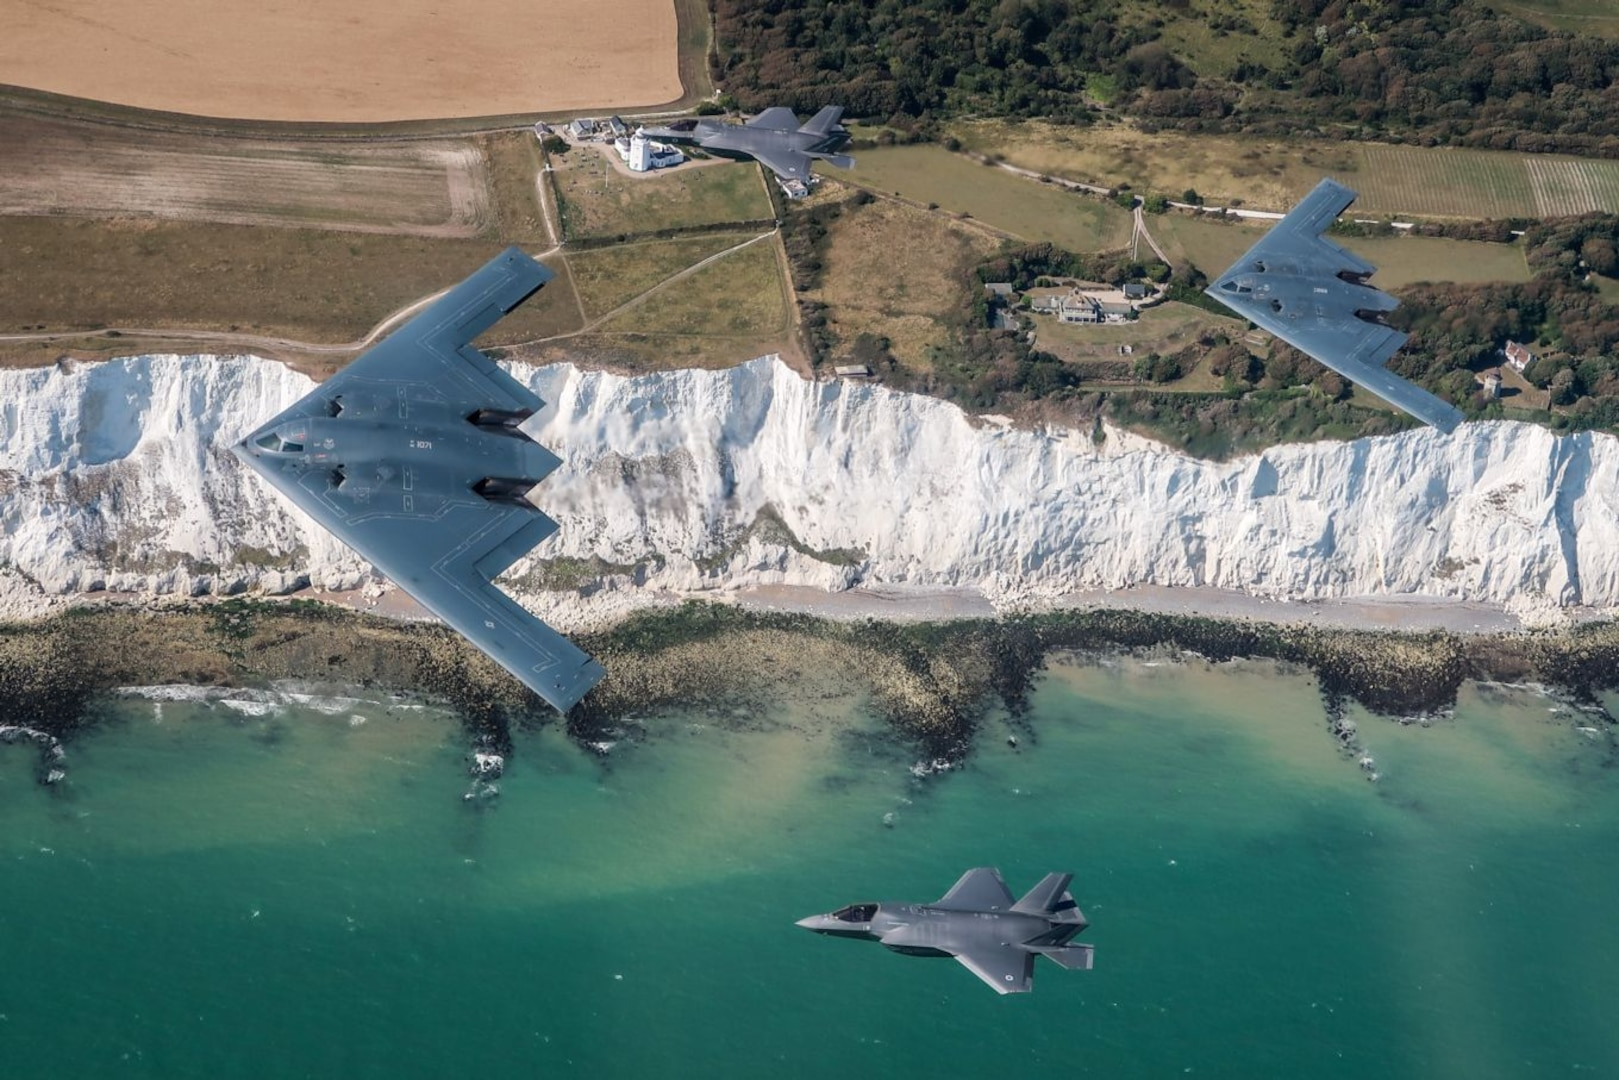 A U.S. Air Force B-2 Spirit, currently deployed to RAF Fairford in Gloucestershire, England, flies above the English countryside near Dover with two RAF F-35 jets, August 30, 2019. This is the first time UK F-35 Lightening jets have conducted training with the U.S. B-2 stealth bomber. (Courtesy Photo)